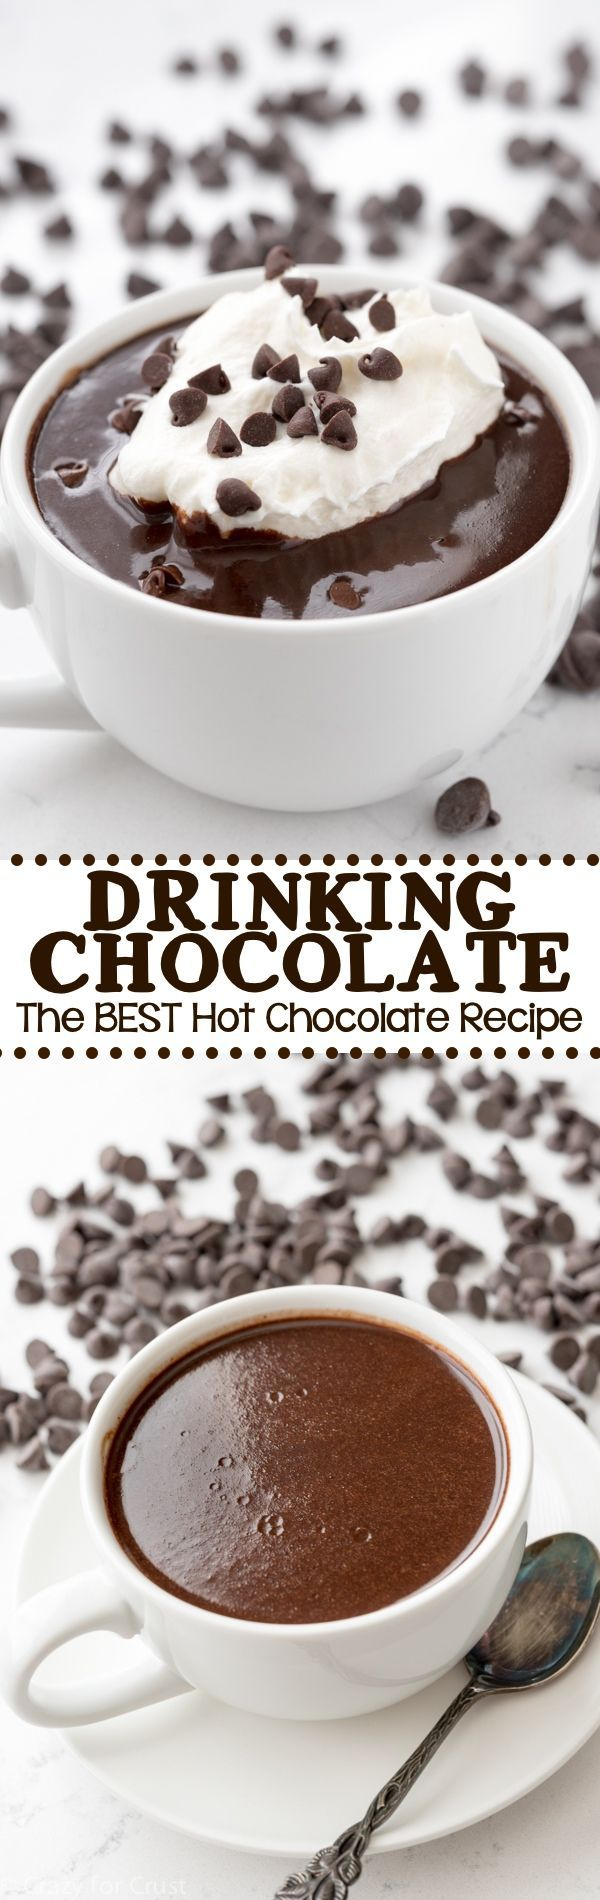 Drinking Chocolate - an easy hot chocolate recipe that tastes like you're drinking liquid ganache!: